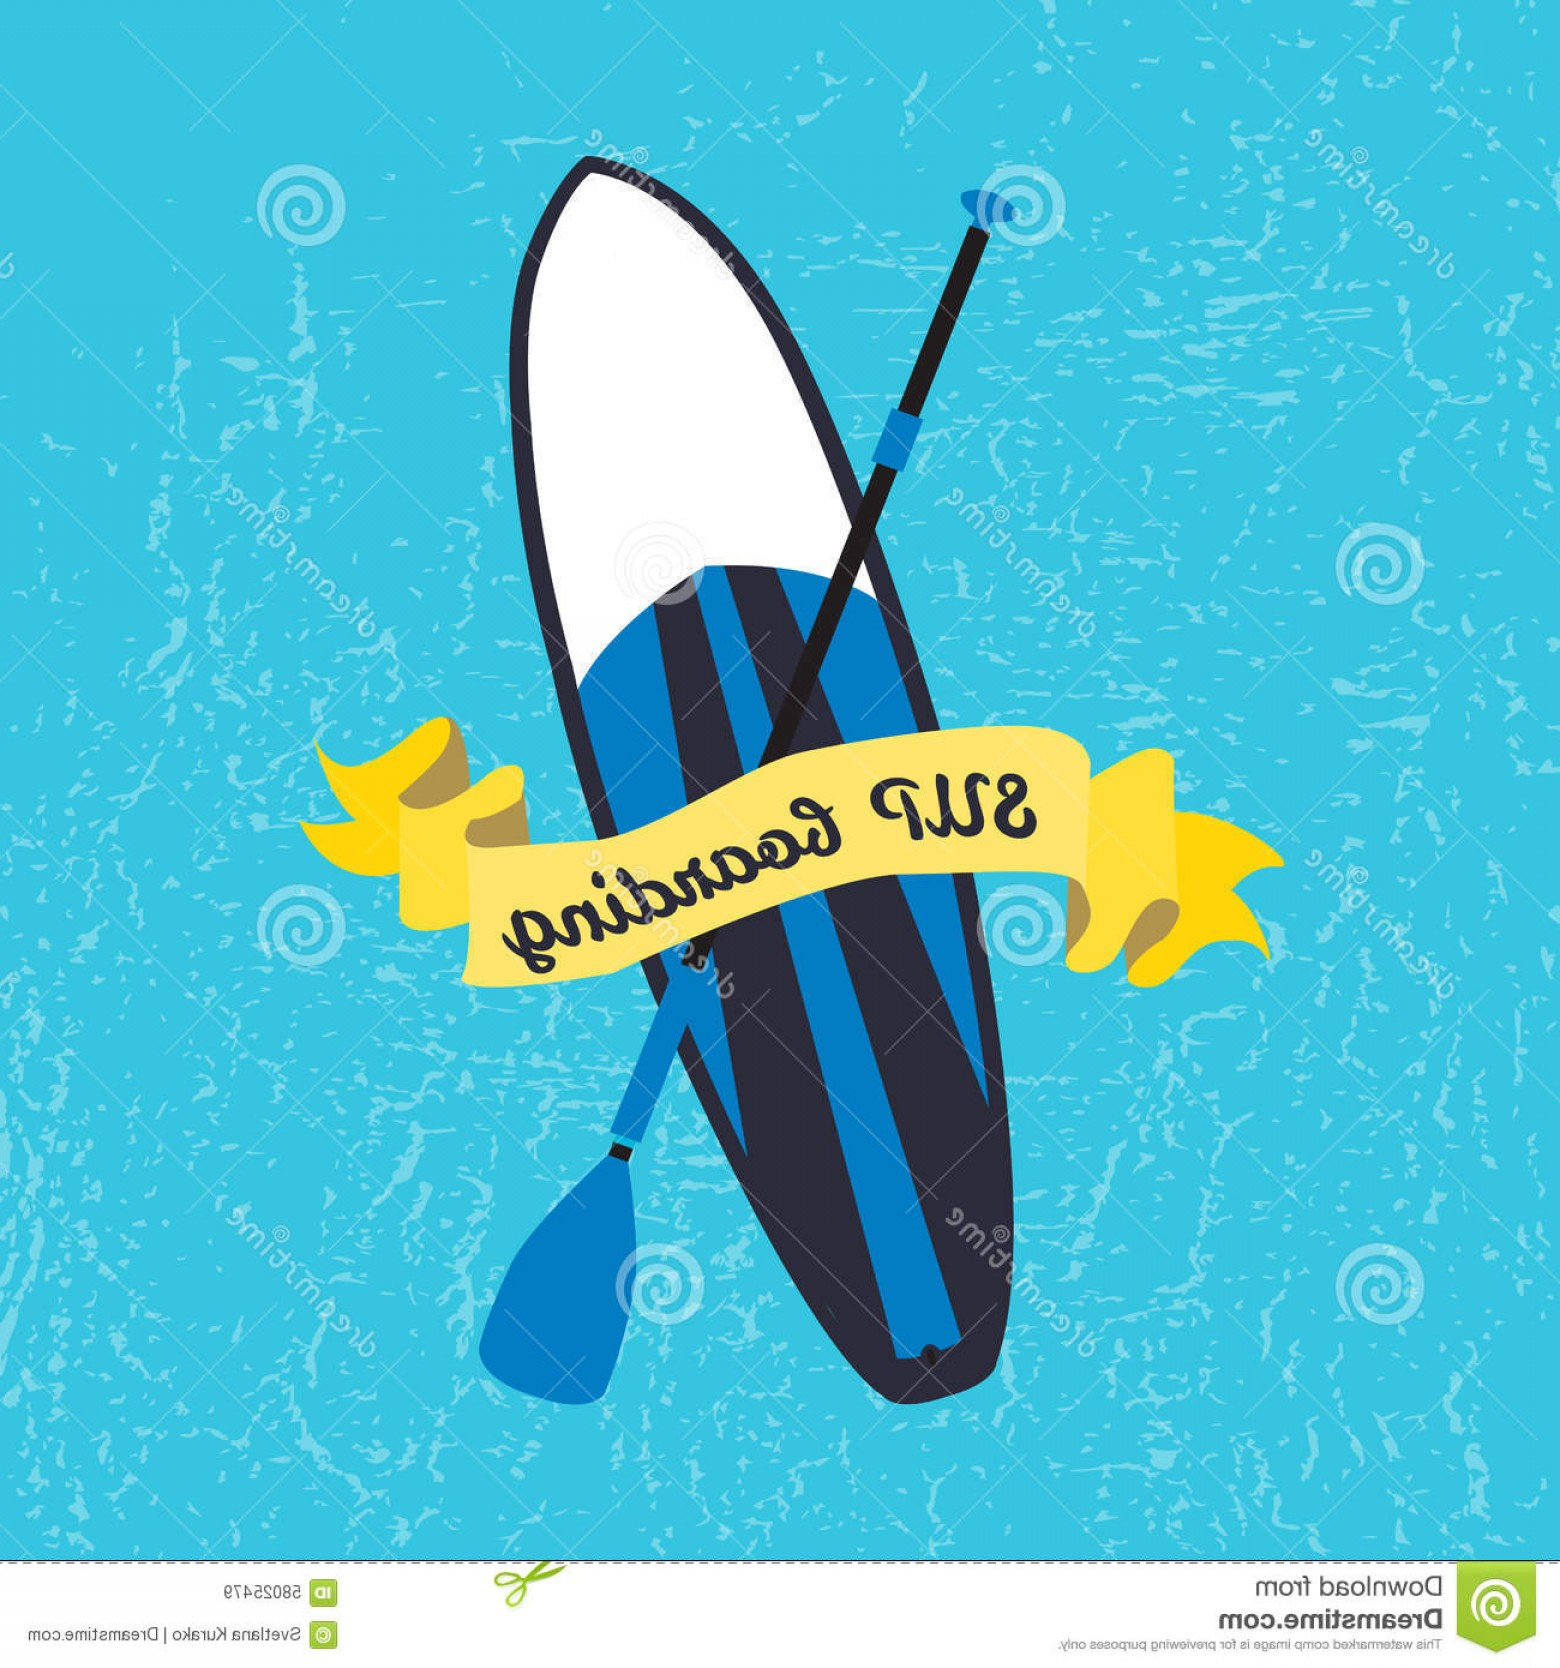 Paddleboard Vector Icons: Stock Illustration Vector Illustration Stand Up Paddle Board Paddle Flat Design Style Signature Sup Boarding Textured Background Image